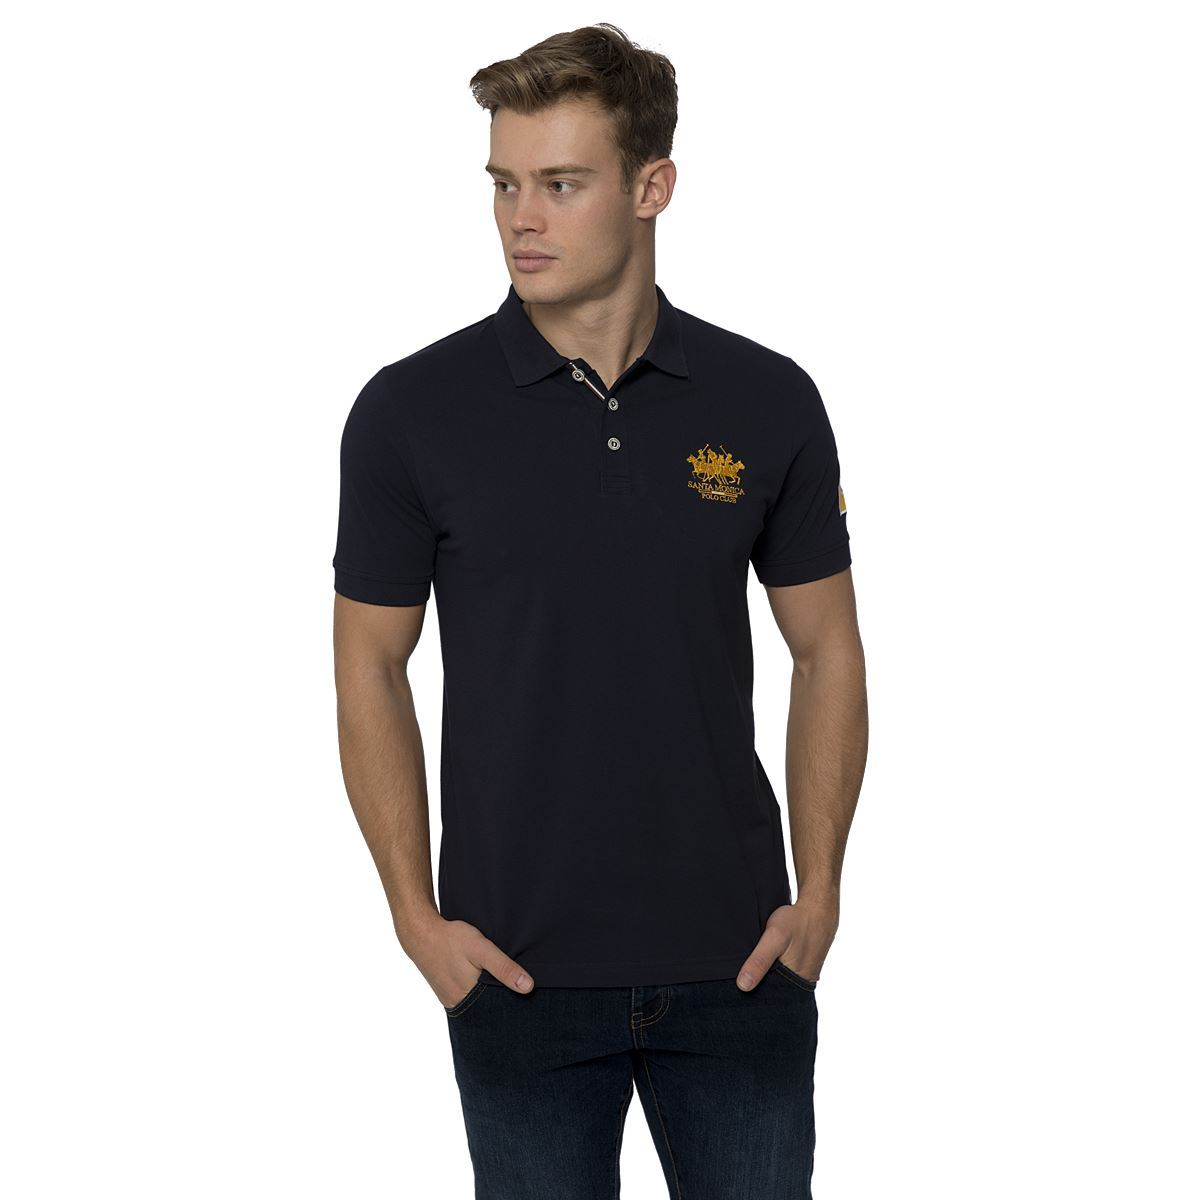 mens casual polo shirt short sleeved top by santa monica polo club size s xl ebay. Black Bedroom Furniture Sets. Home Design Ideas